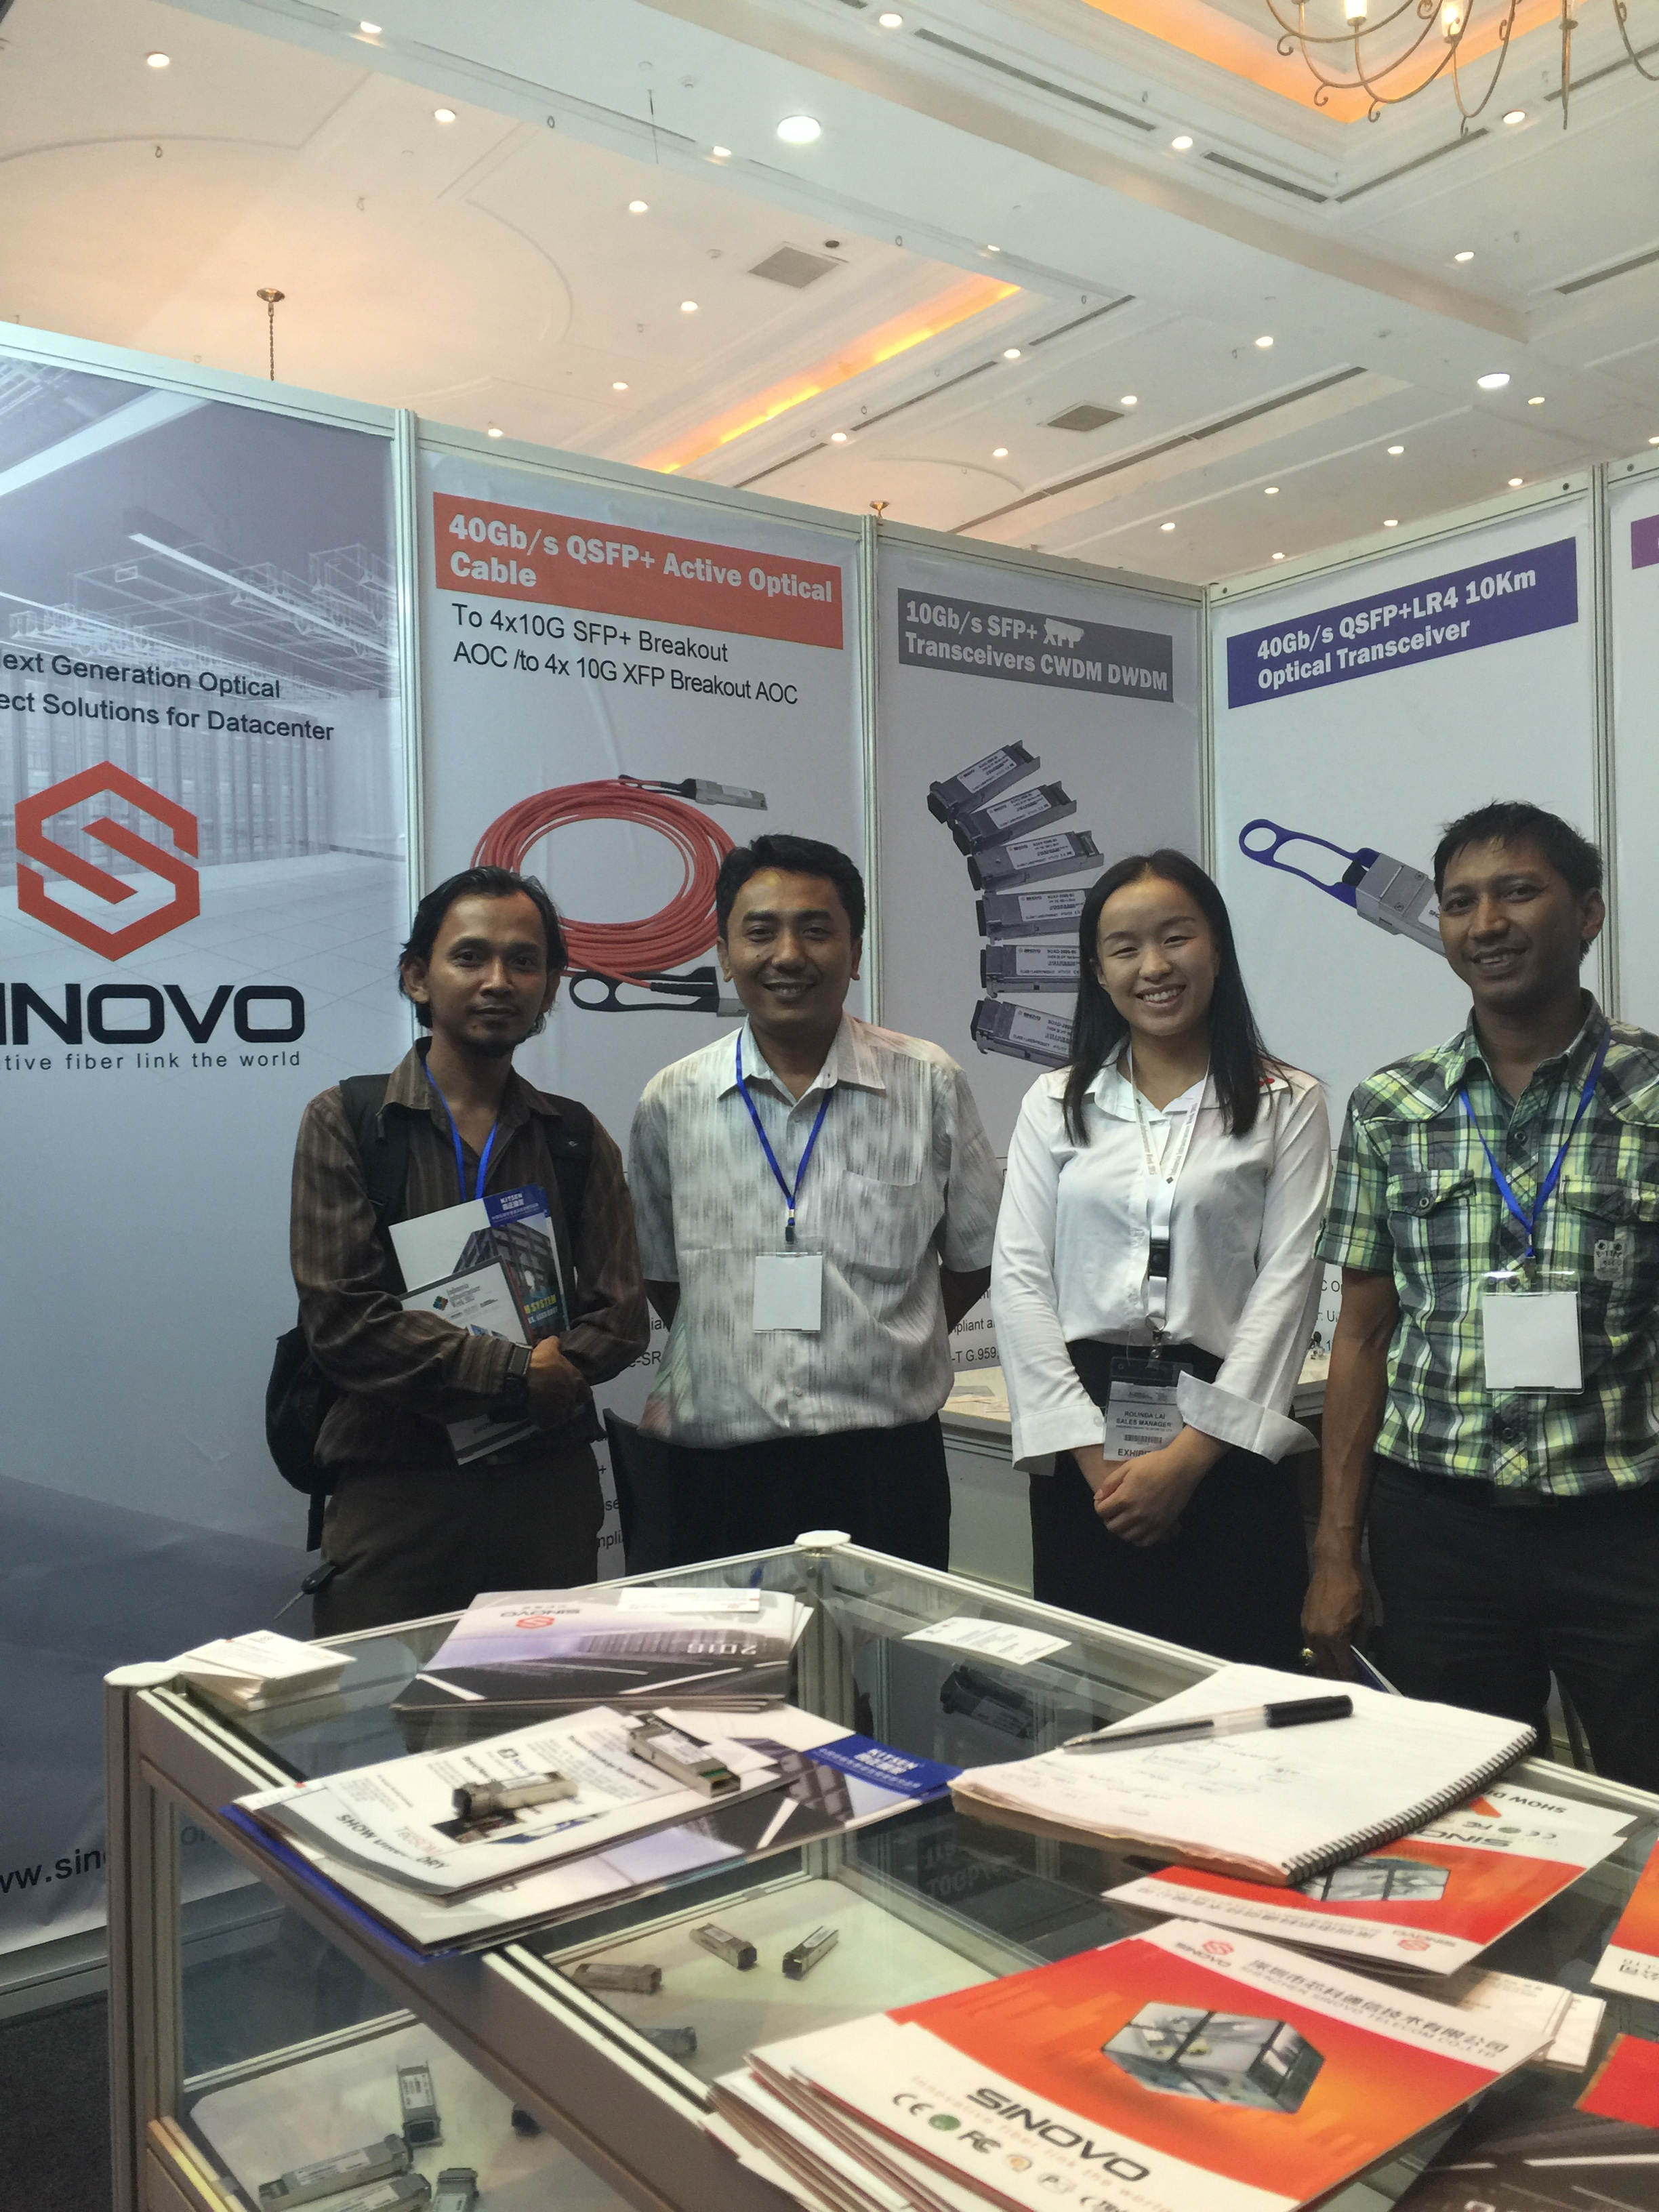 SINOVO Attended the 2015 Indonesia CONNET EXPO